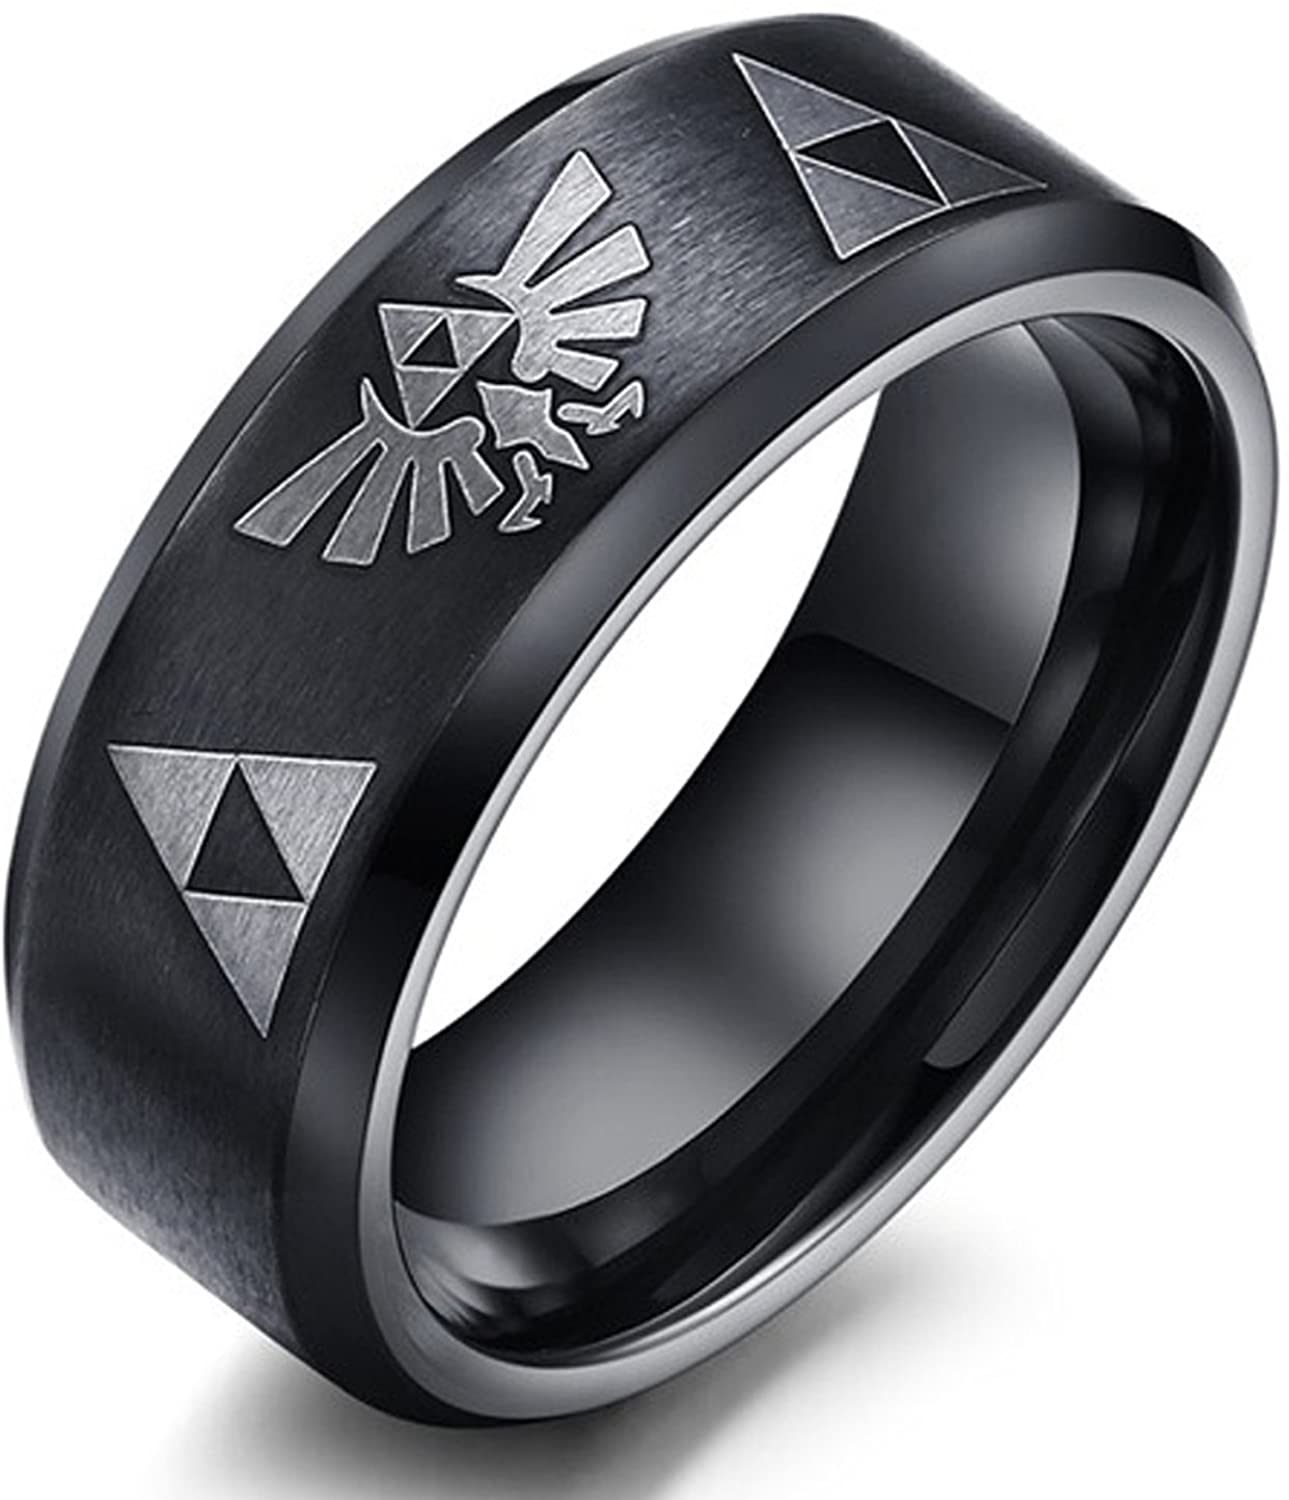 Nanafast 8mm The Legend of Zelda Triforce Ring, Stainless Steel Matte Finished Bands